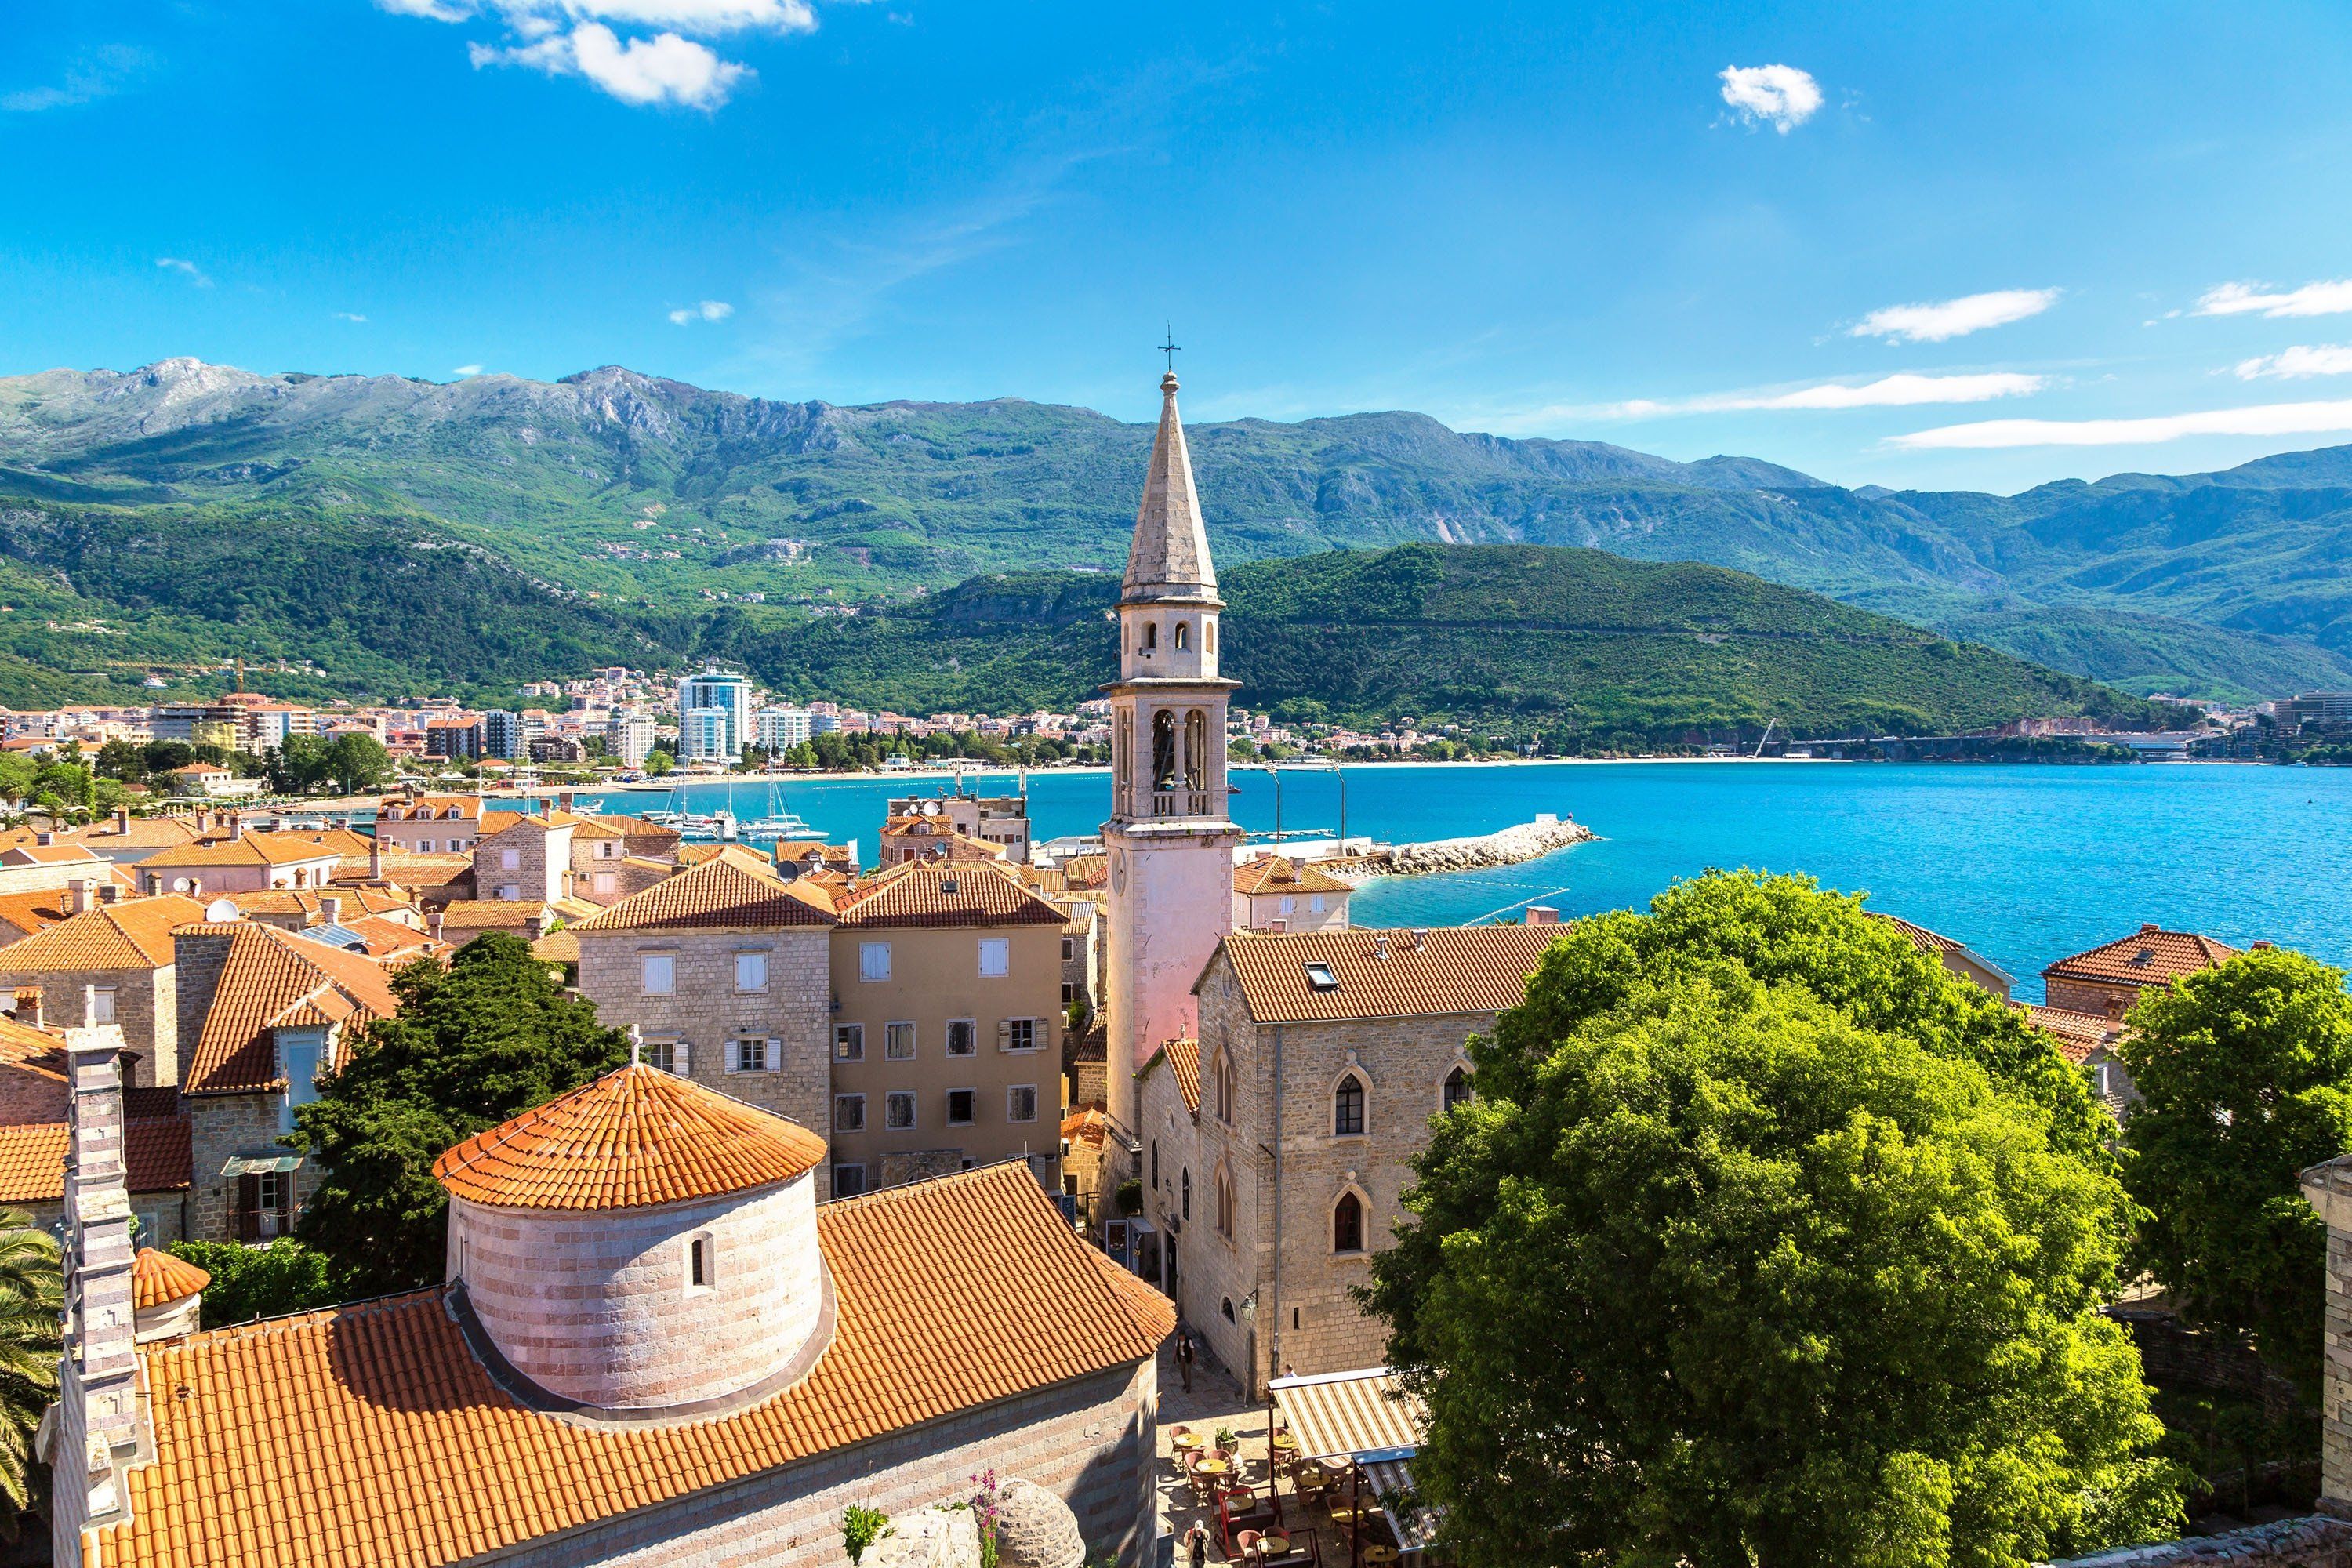 With the Adriatic Sea in the background, the bell tower of a church sticks out from the skyline of Budva's Altstadt, or Old Town, Montenegro. (Shutterstock Photo)